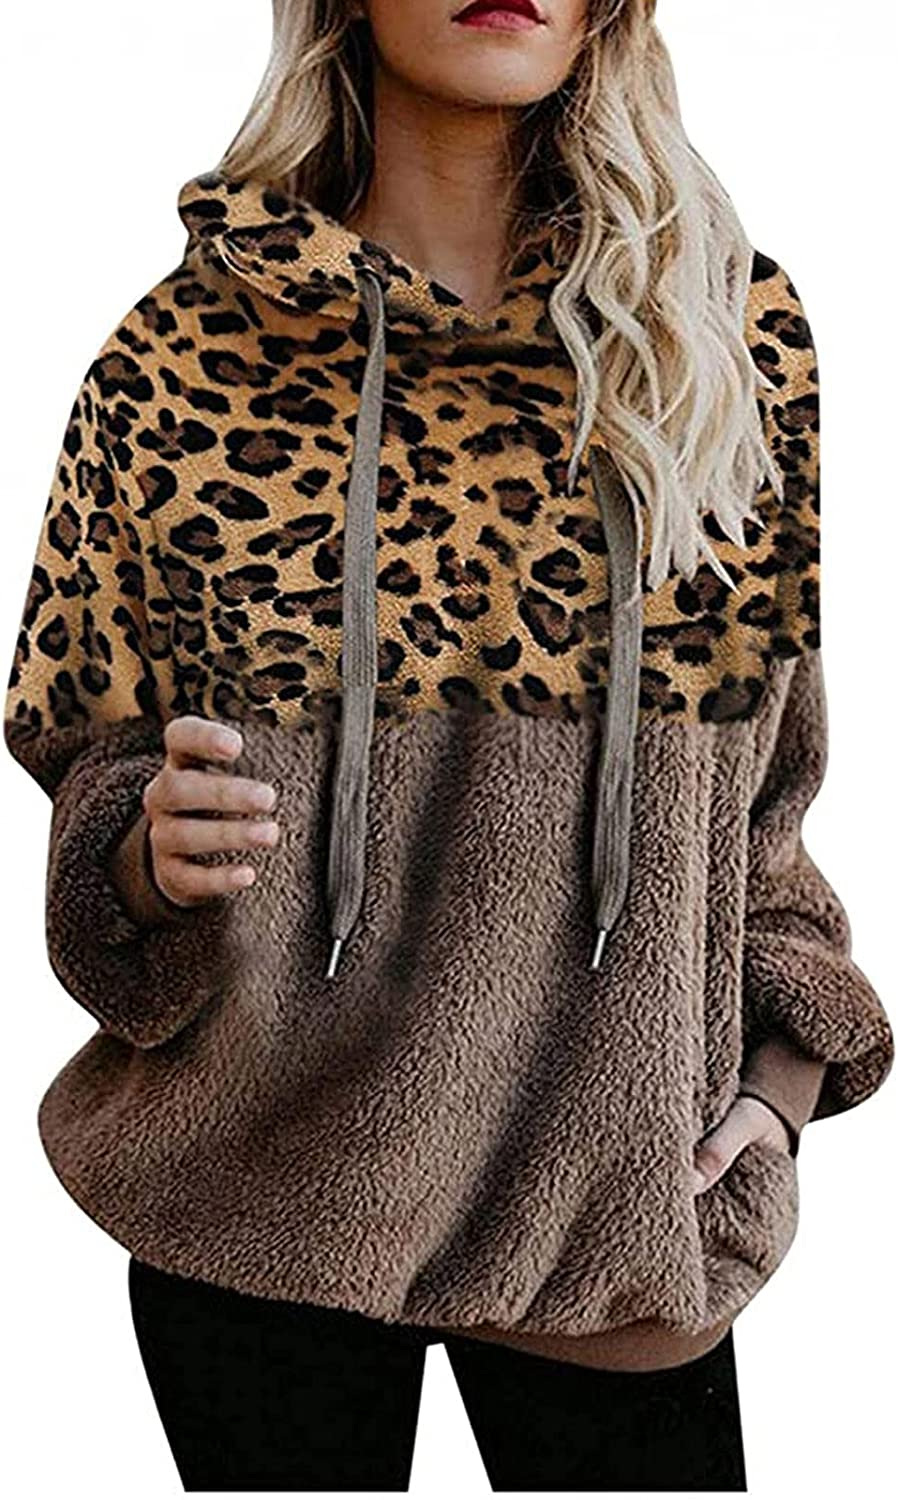 5 popular Women Hooded Sweatshirts Fall Winter Cheap super special price Pullover Plush Ou Soft Warm